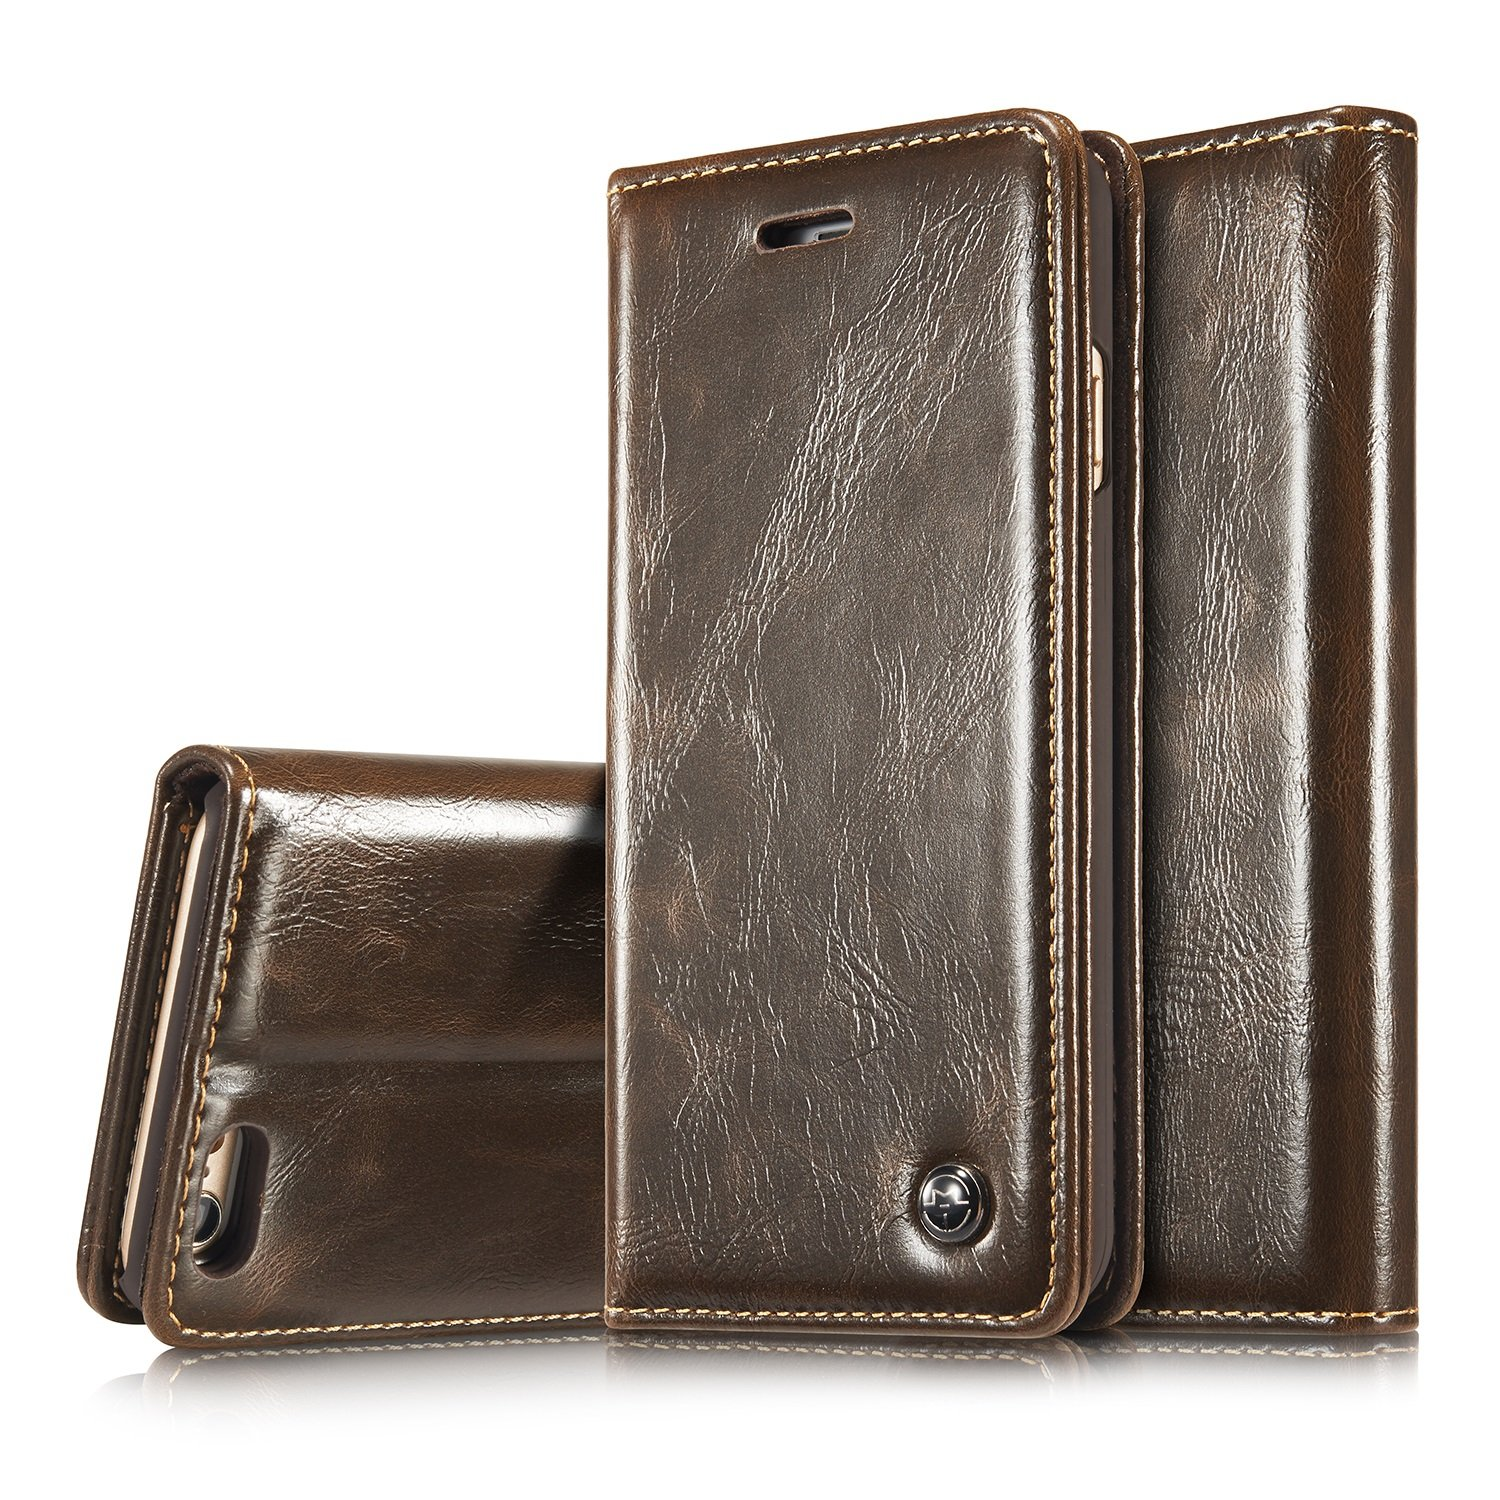 SRY-LED For iPhone 6Plus CaseMe iPhone6 Wallet Case Flip PU Leather Phone Case with Card Slot and Magnet Clutch Foldable ( Color : Brown , Edition : Iphone6/6s )